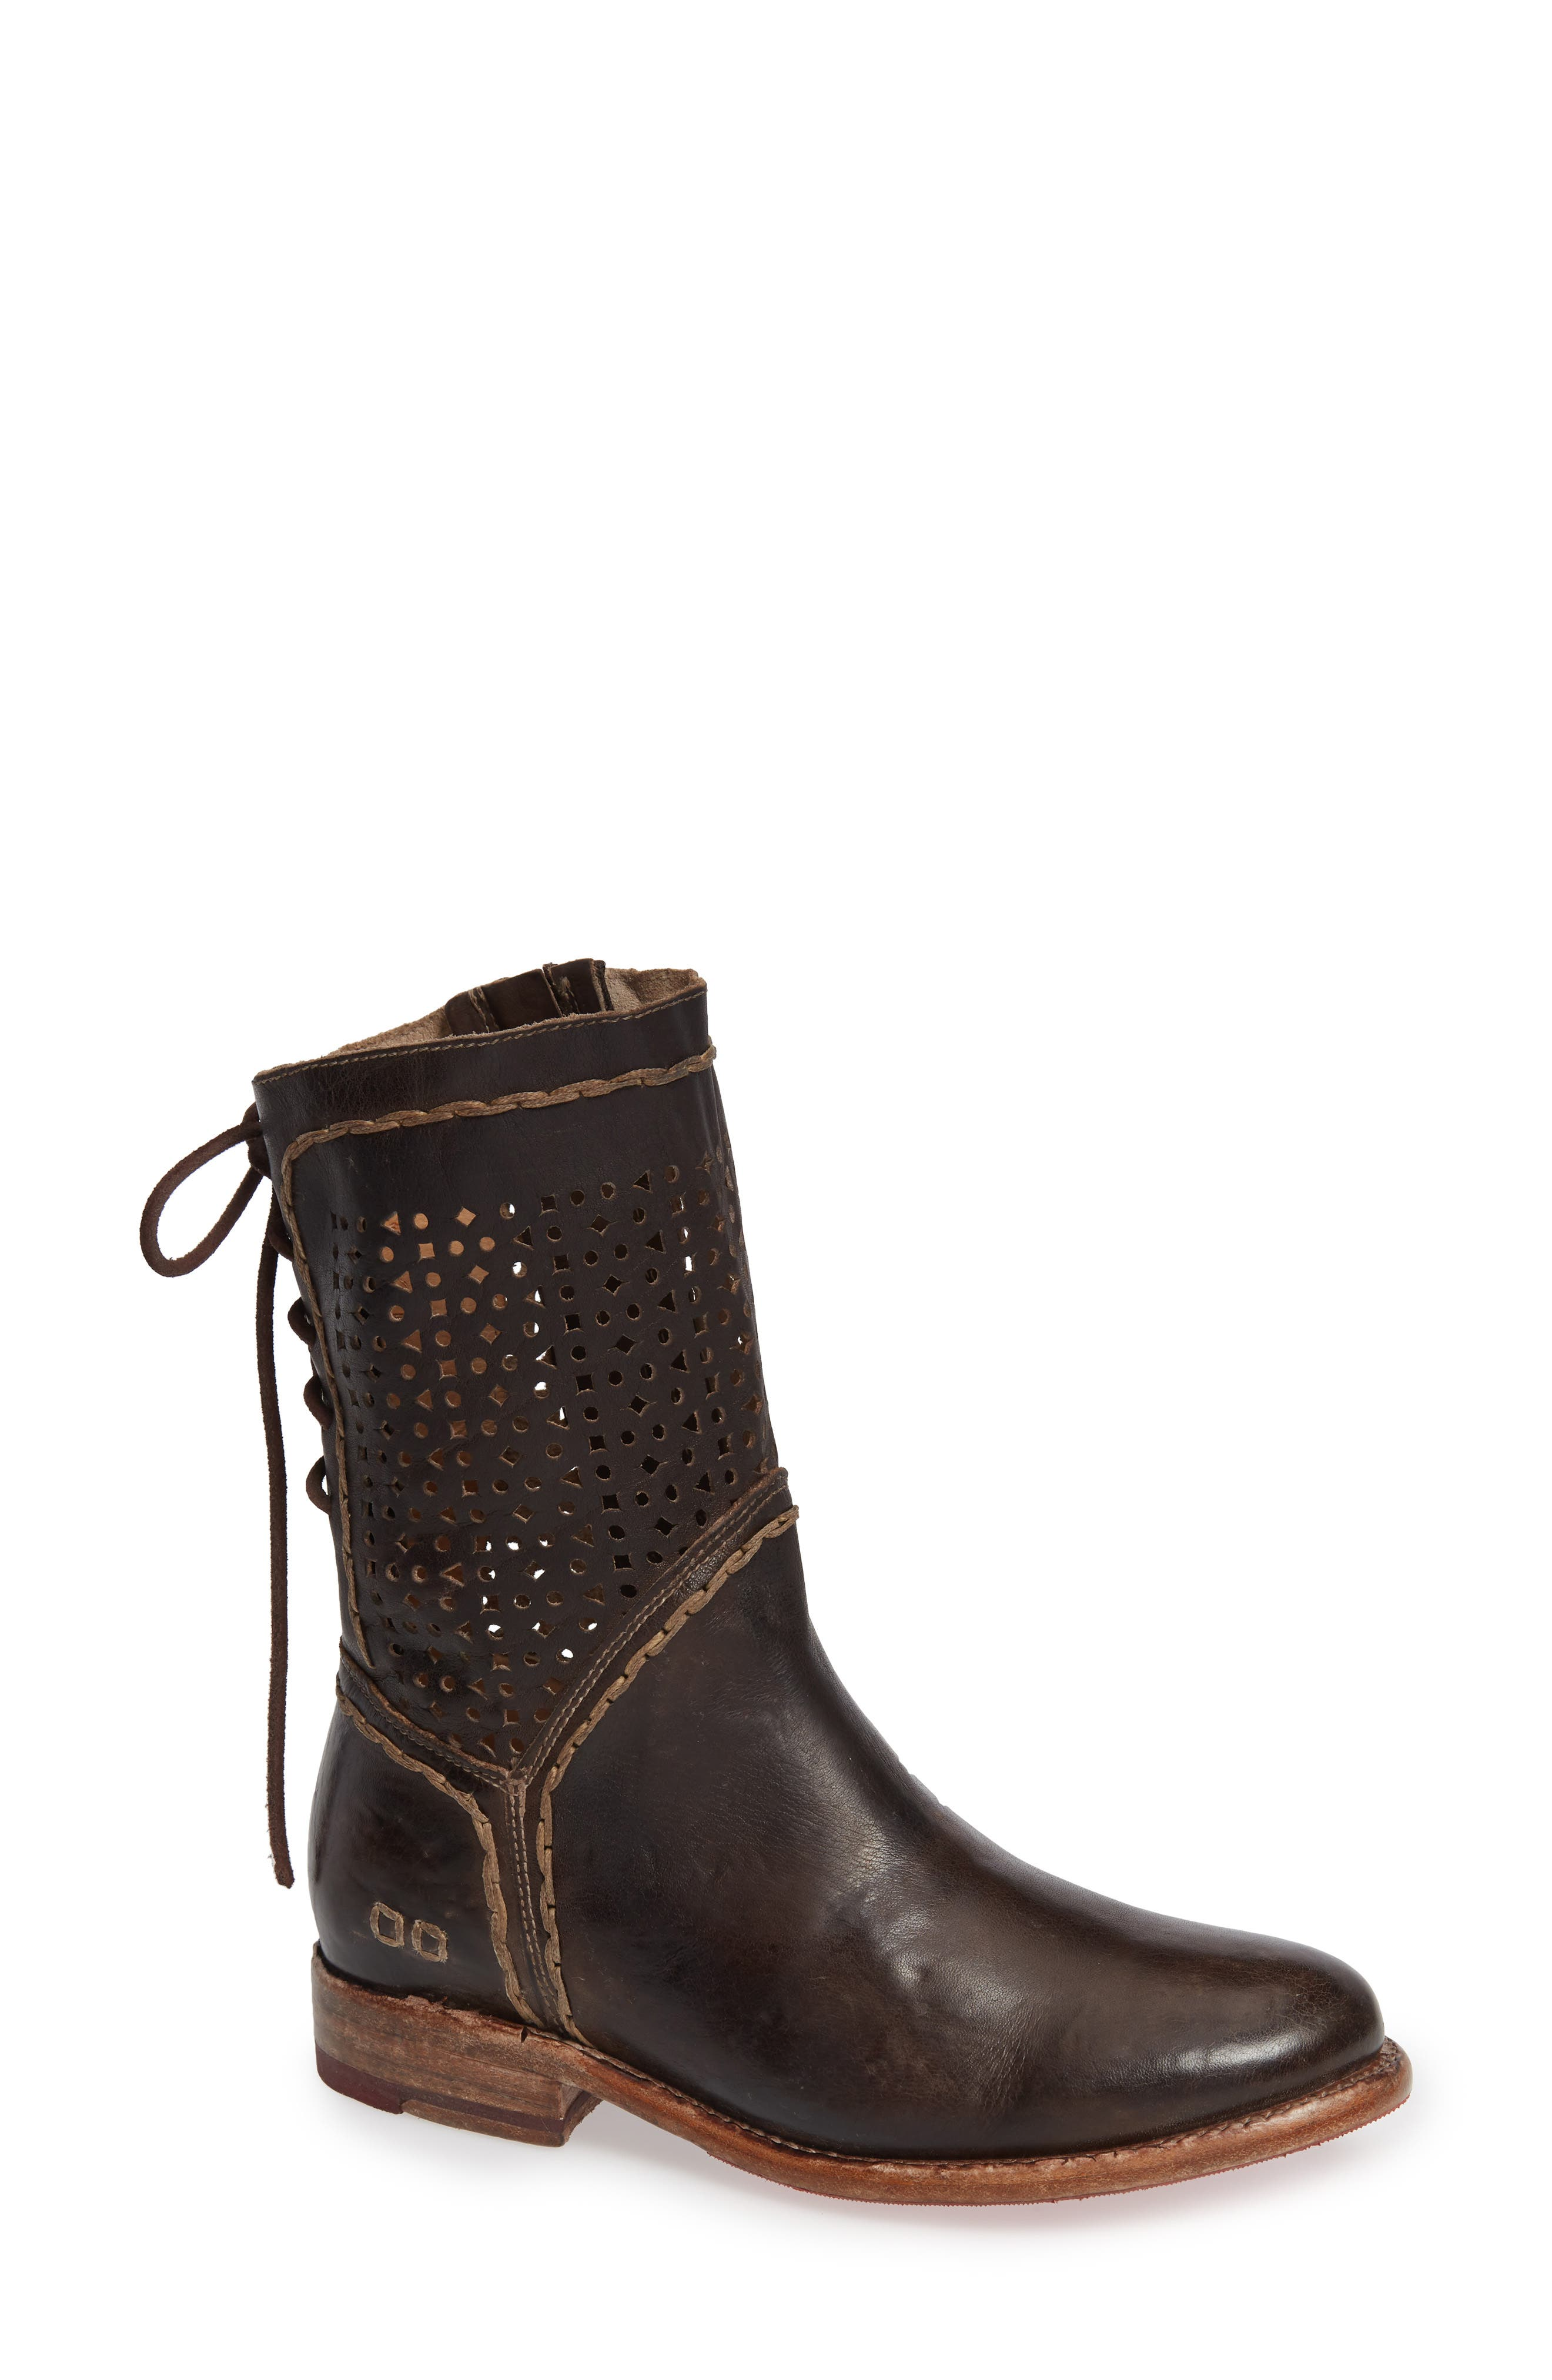 Bed Stu Cheshire Perforated Shaft Boot